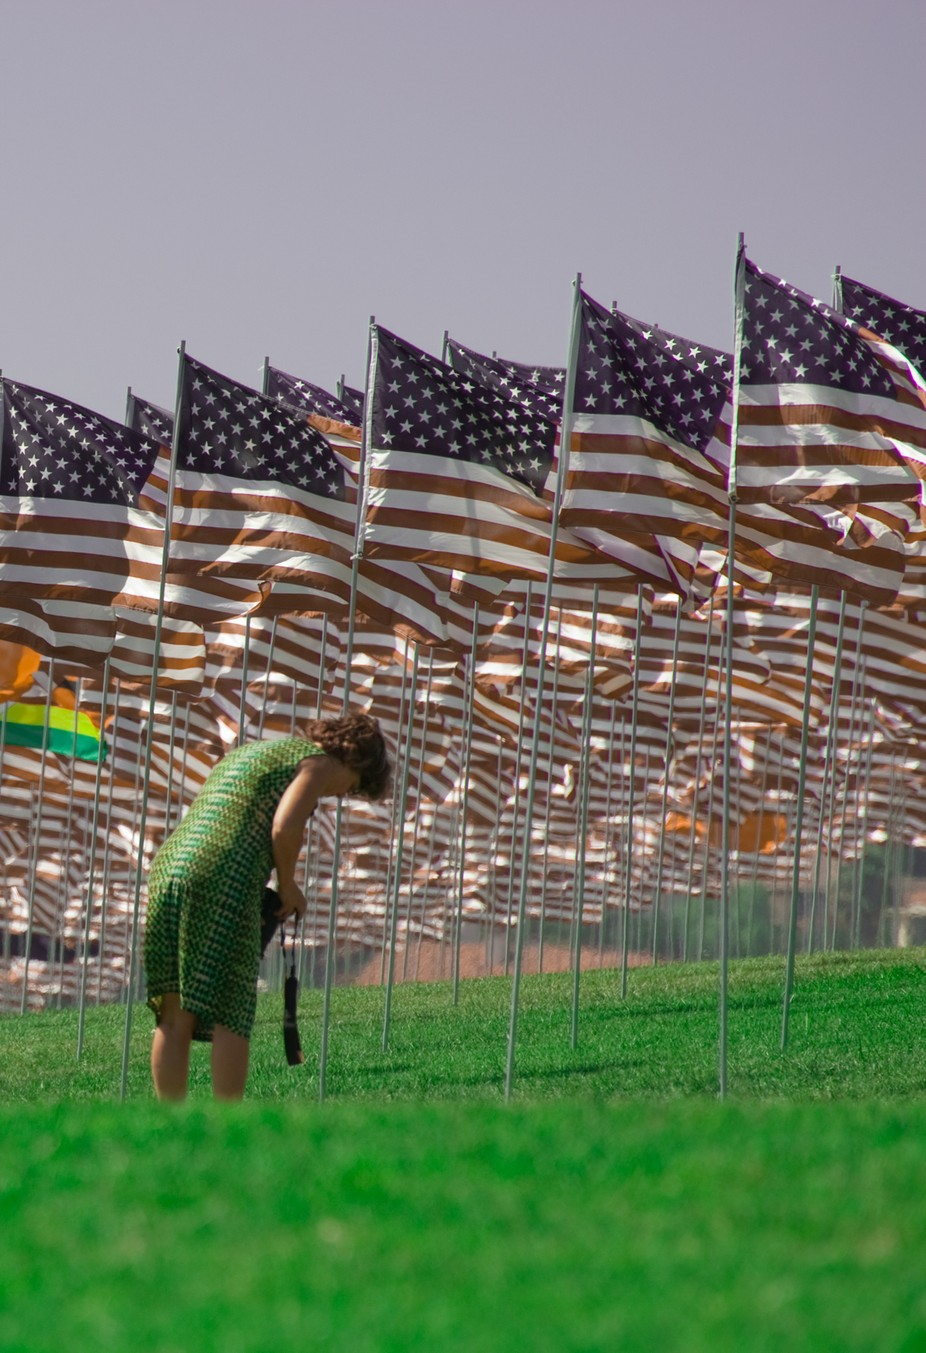 A lady, searching for a loved one\'s memorial flag, on Memorial Day, in Malibu California.